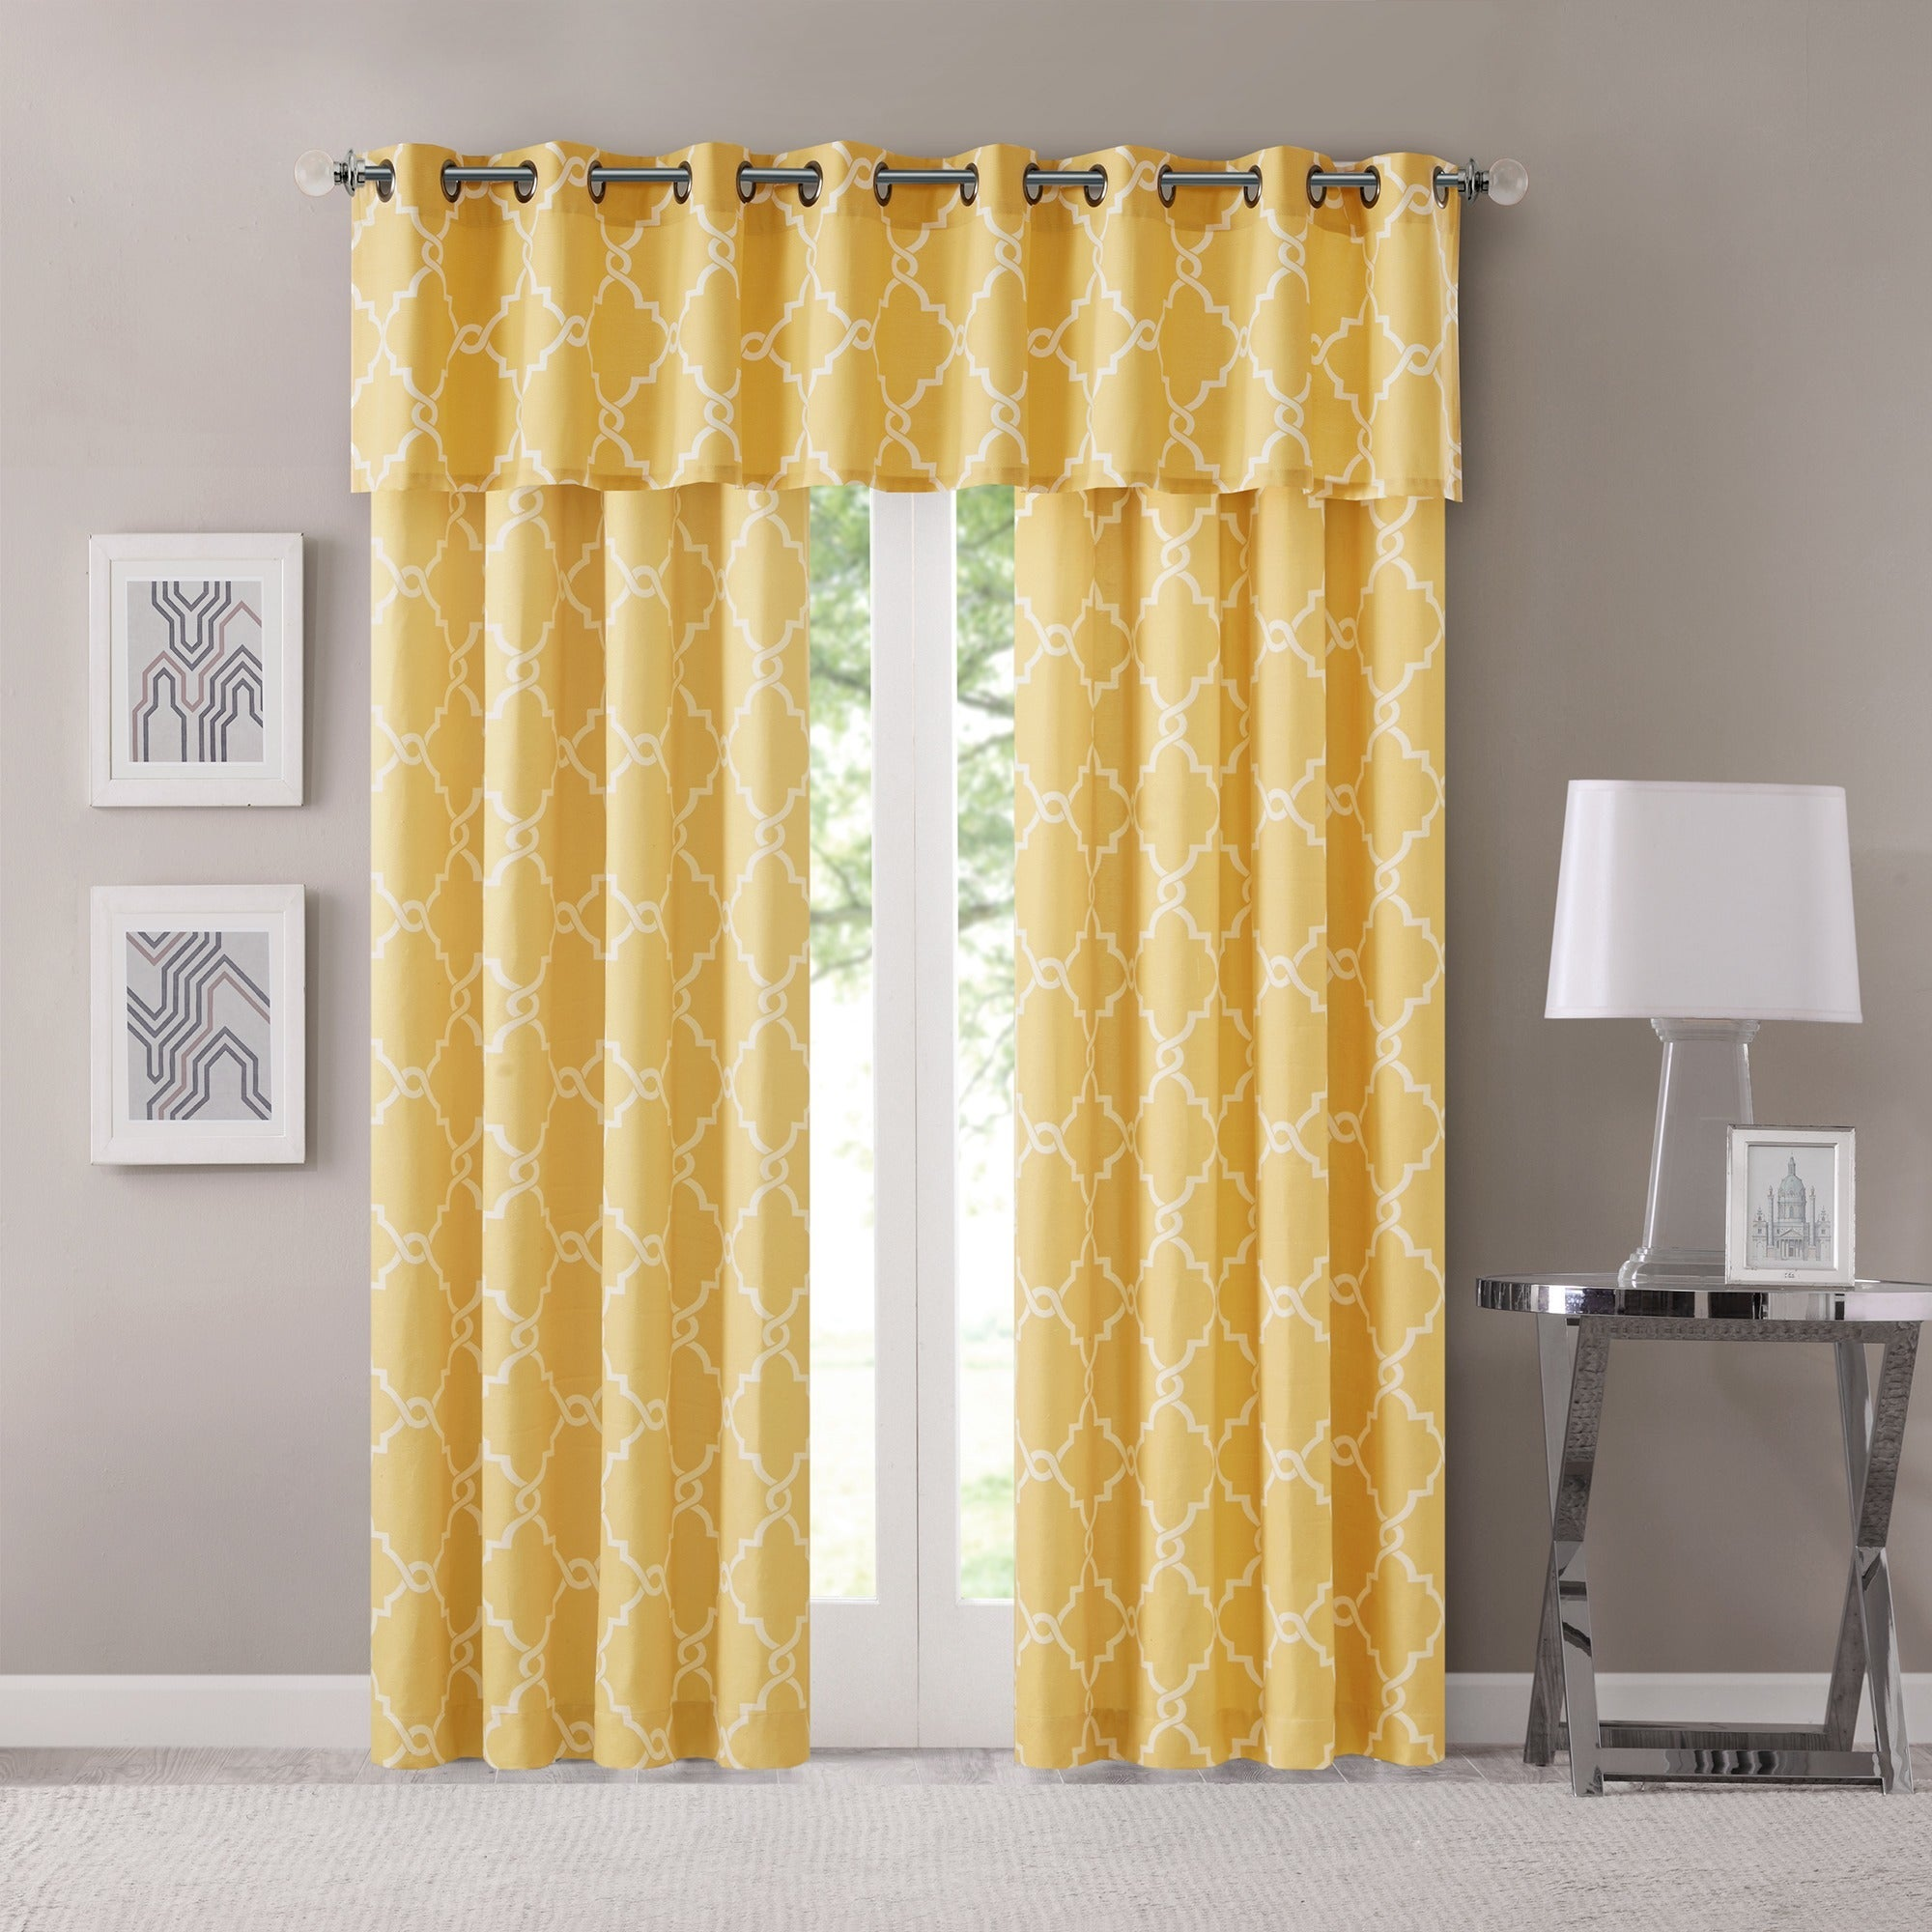 itm sheer coffee drapes brown blackout fabric swag net curtain blockout pelmet valance curtains yellow mocha